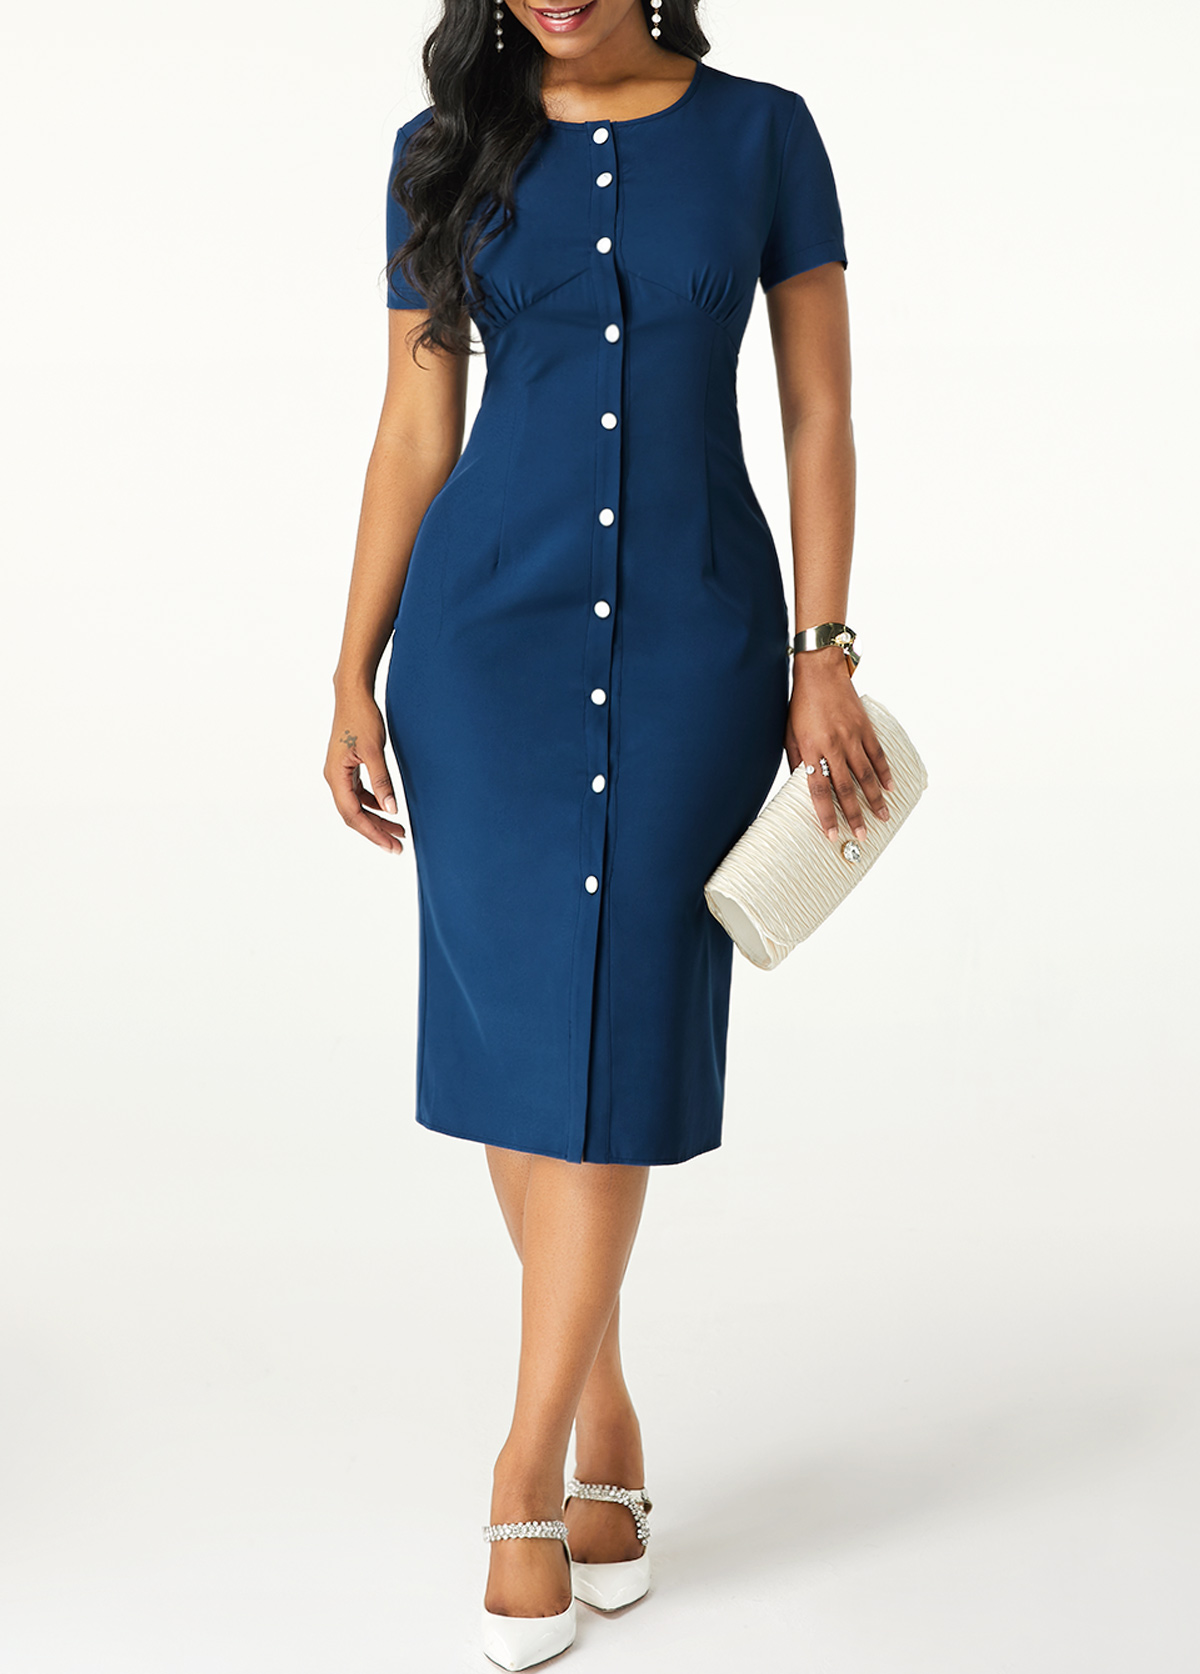 Button Up Short Sleeve Navy Blue Dress